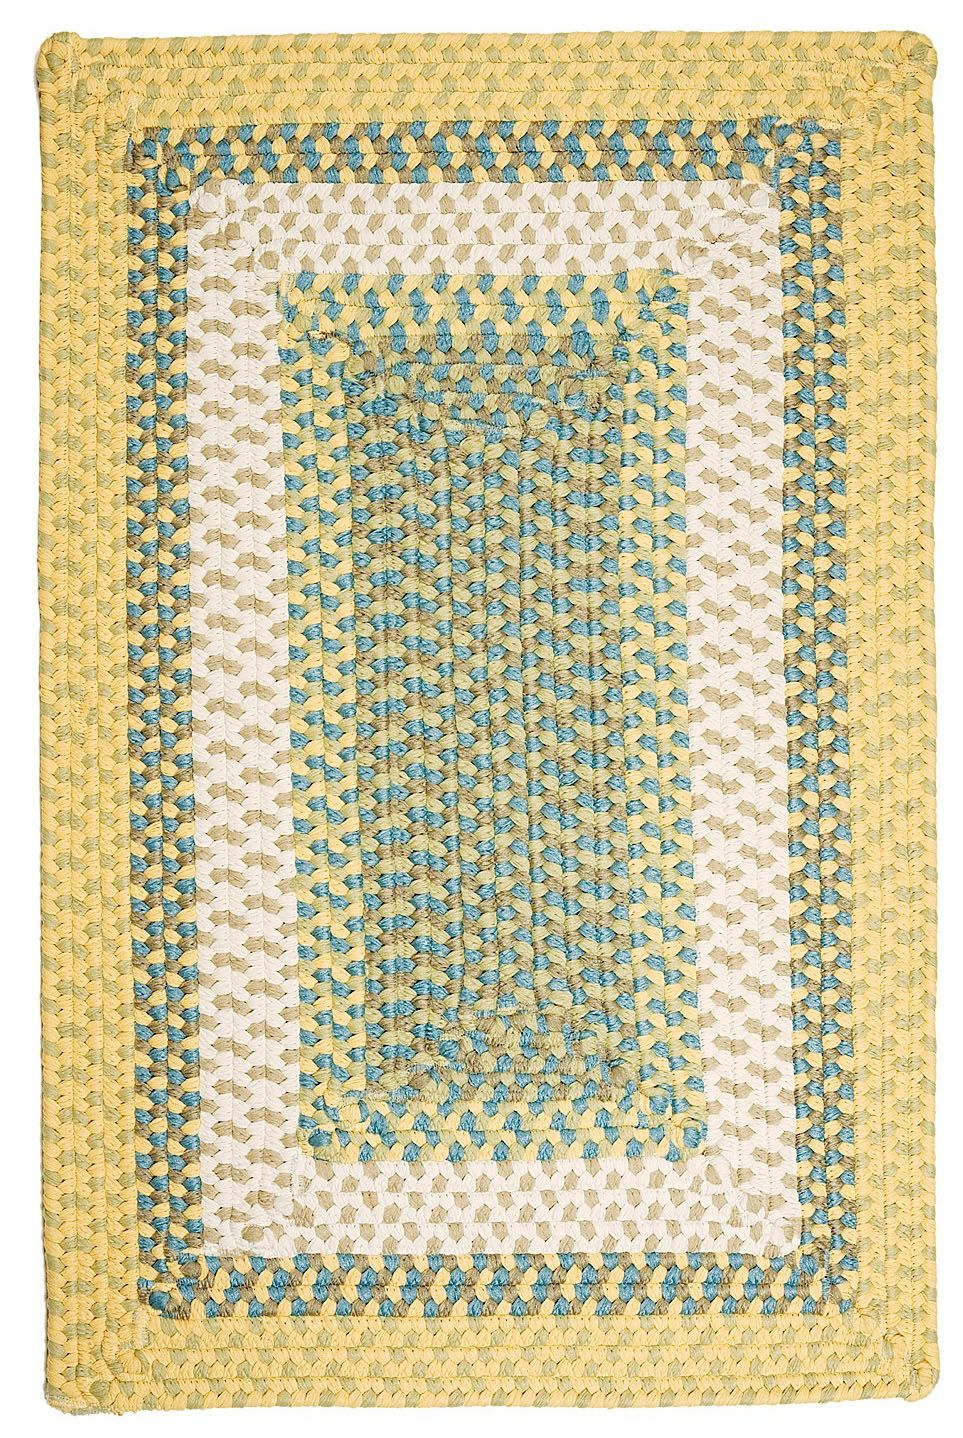 colonial mills montego braided area rug collection